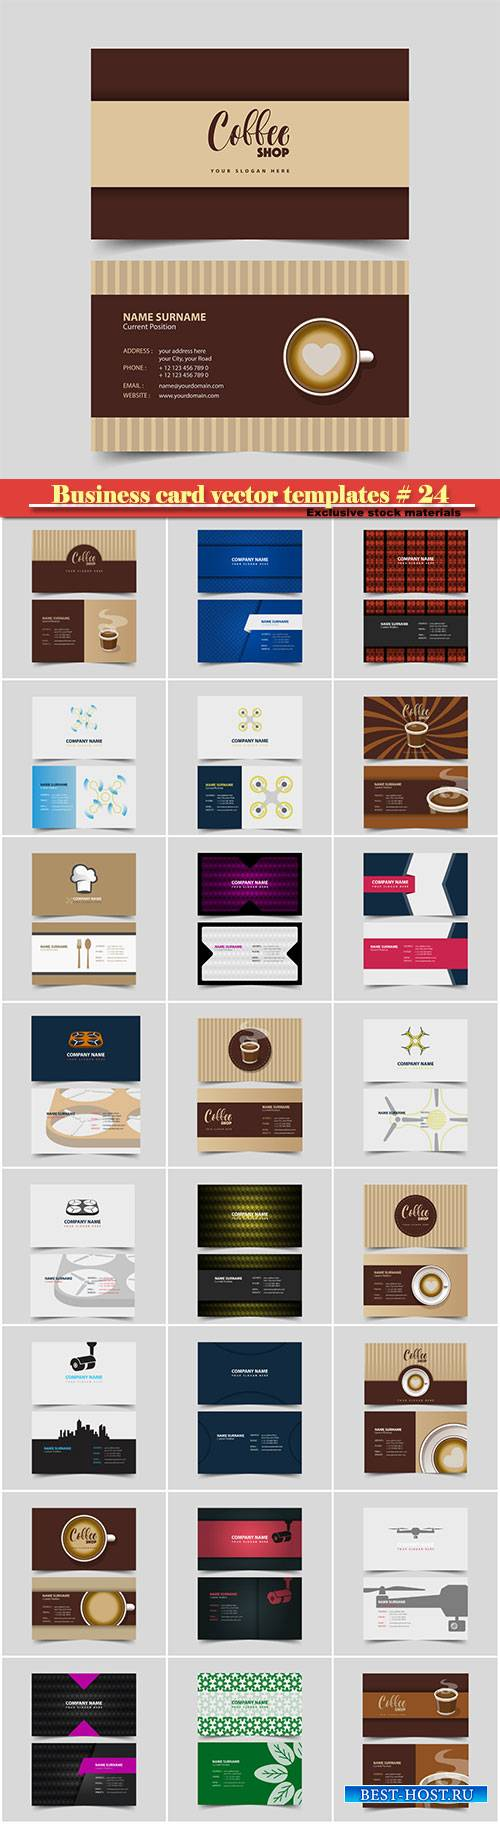 Business card vector templates # 24